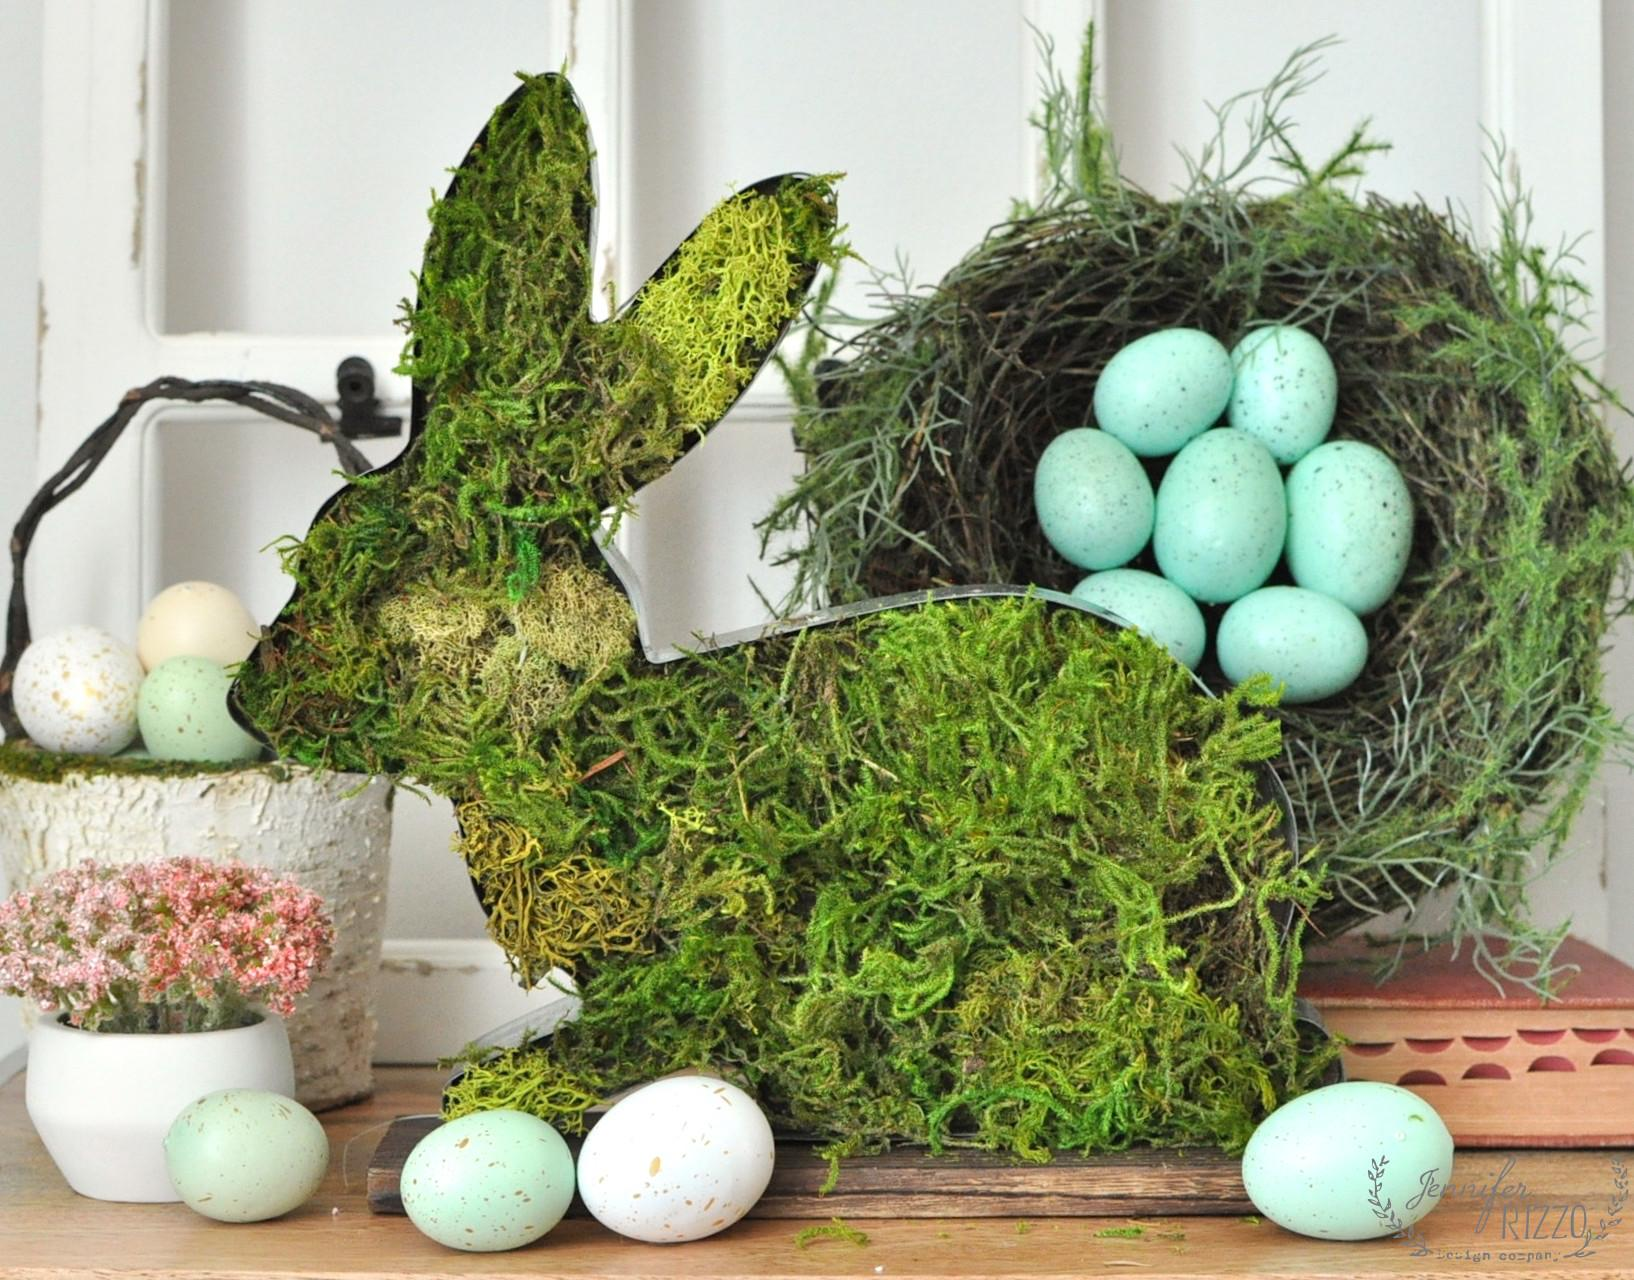 Moss Covered Rustic Bunny Spring Easter Decor